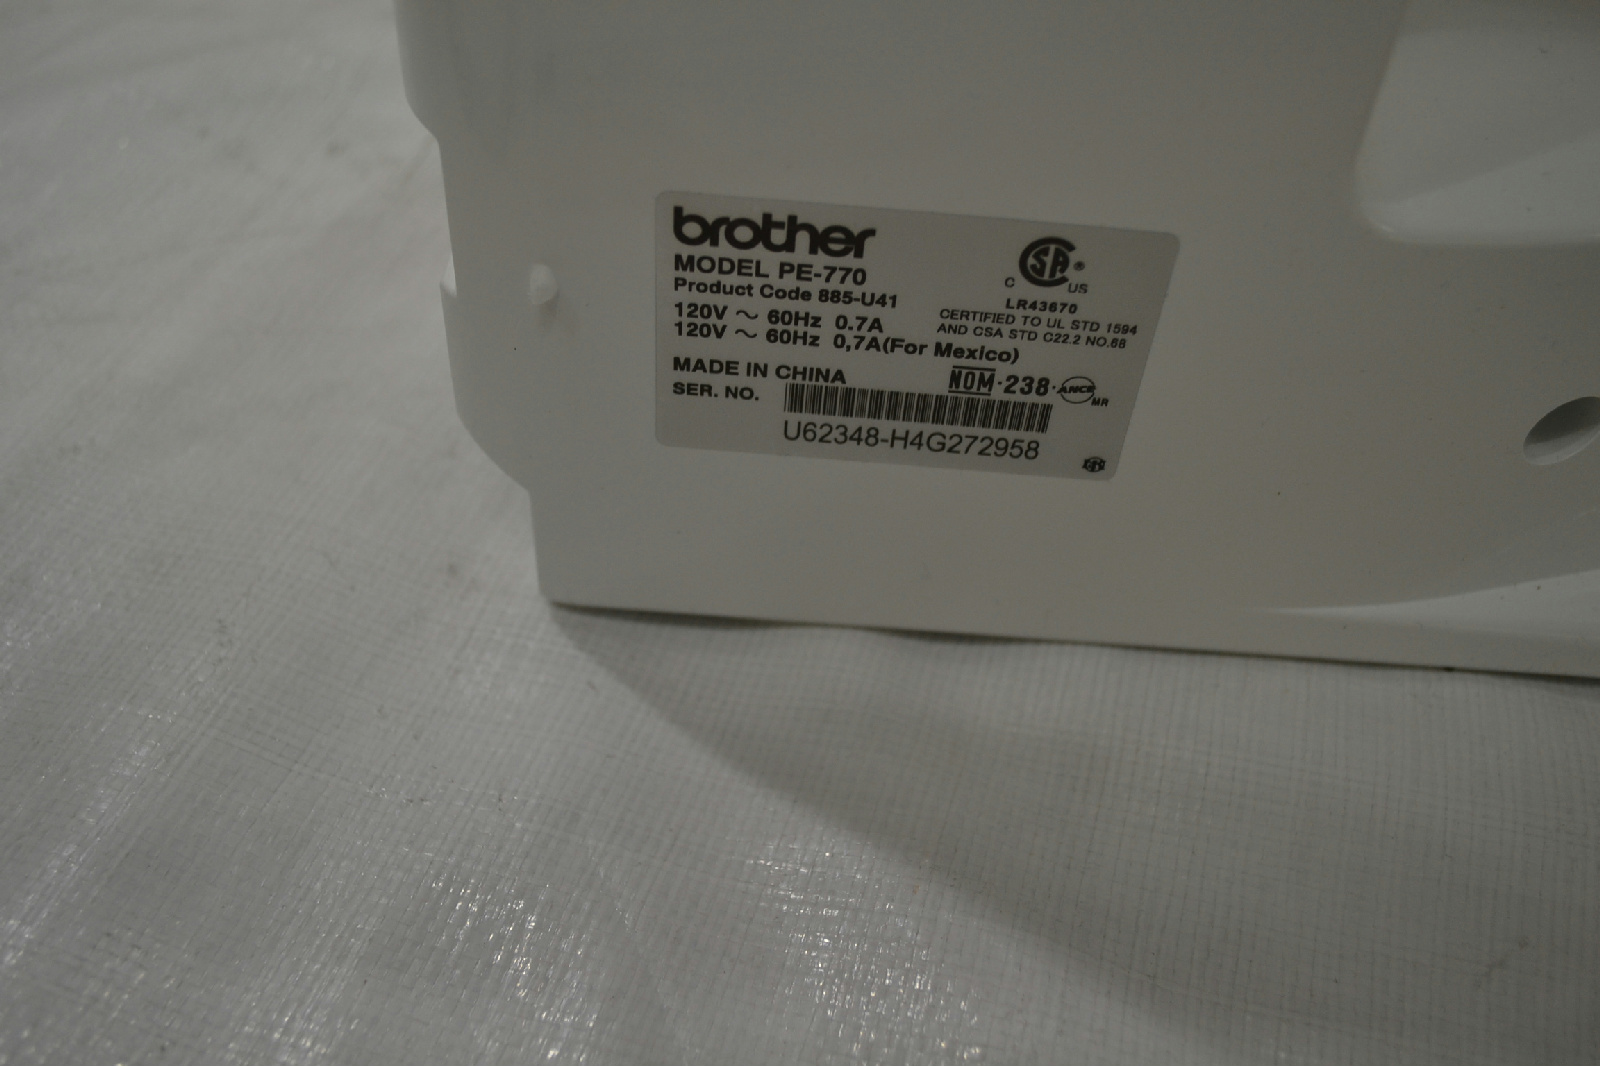 pe770 embroidery machine with usb memory stick compatibility